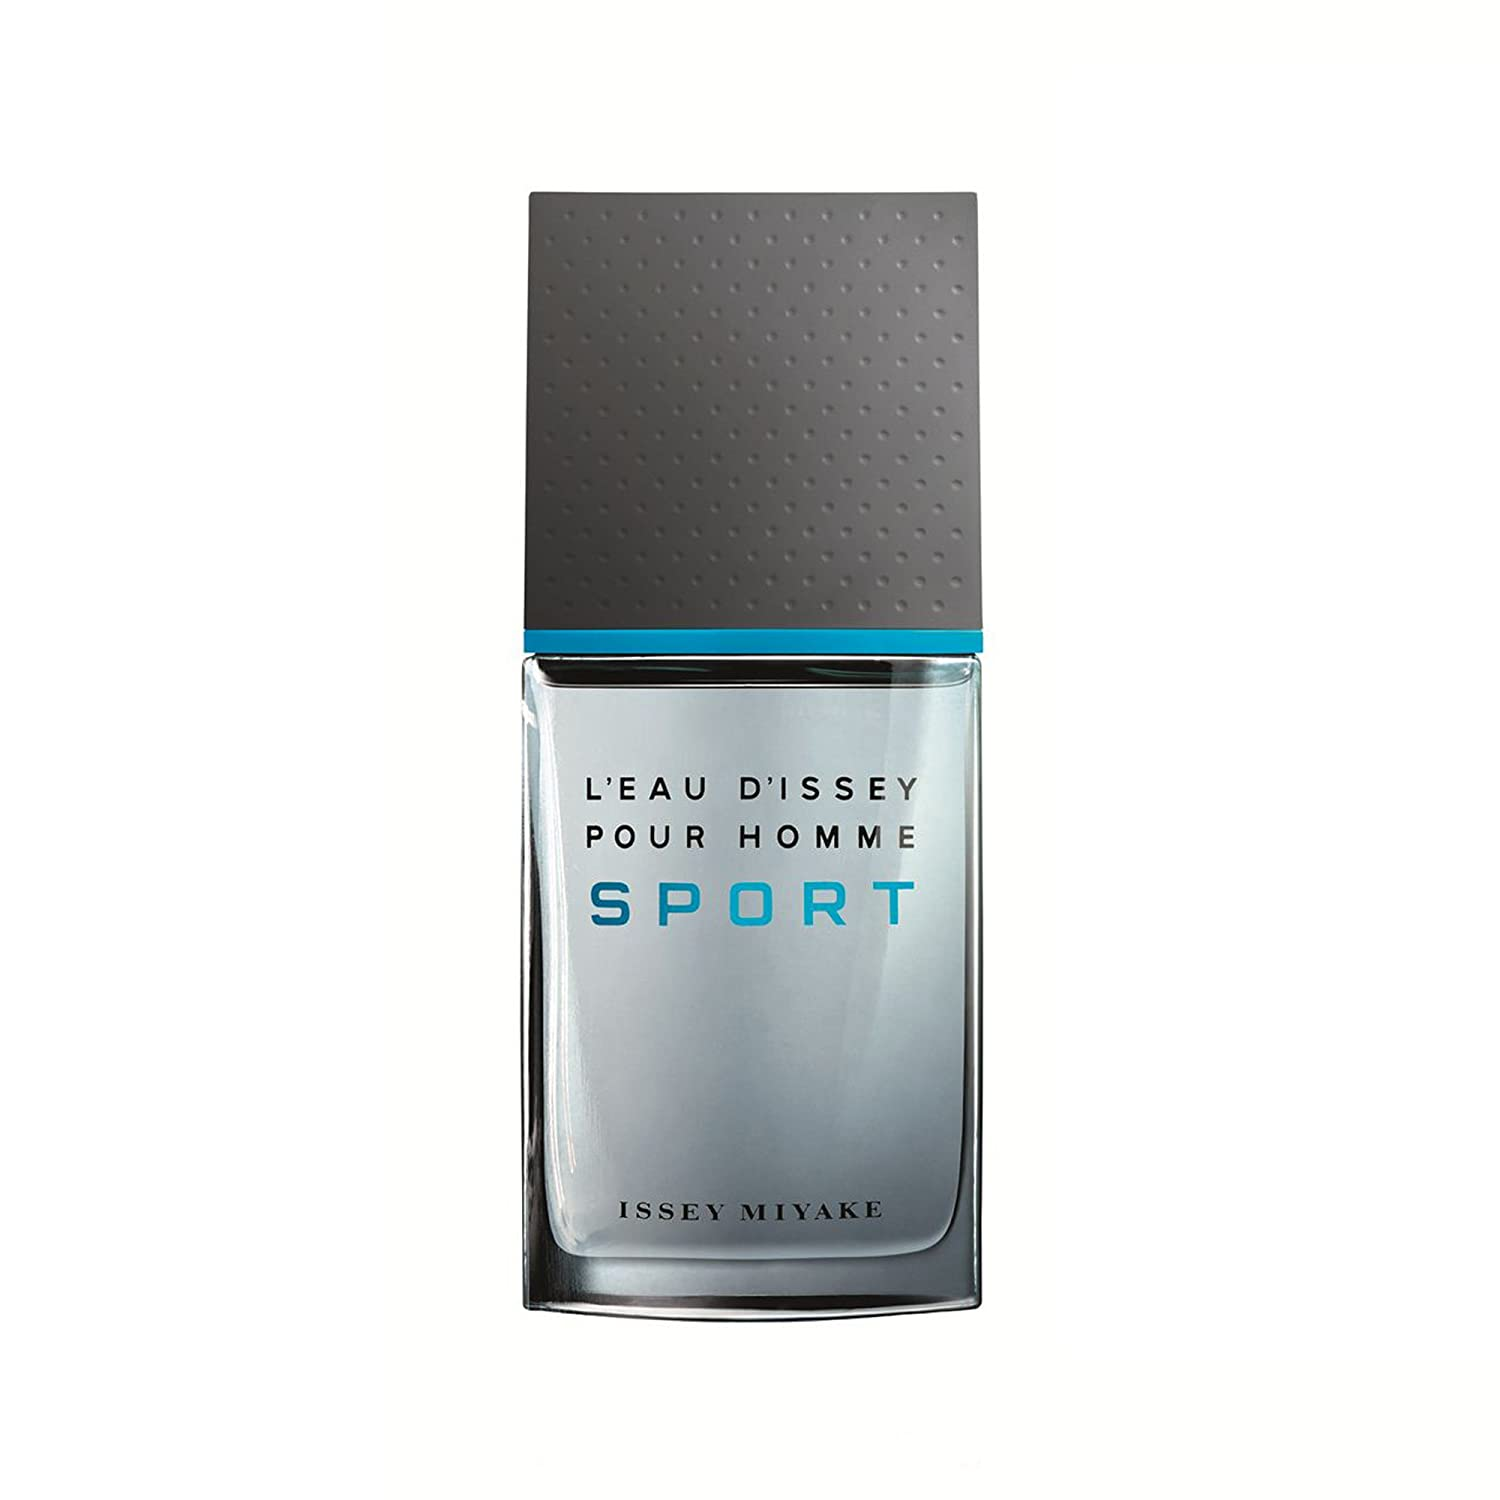 Issey Miyake L'eau D'issey Sport for Men-3.3-Ounce EDT Spray ISSEY-867158 37849